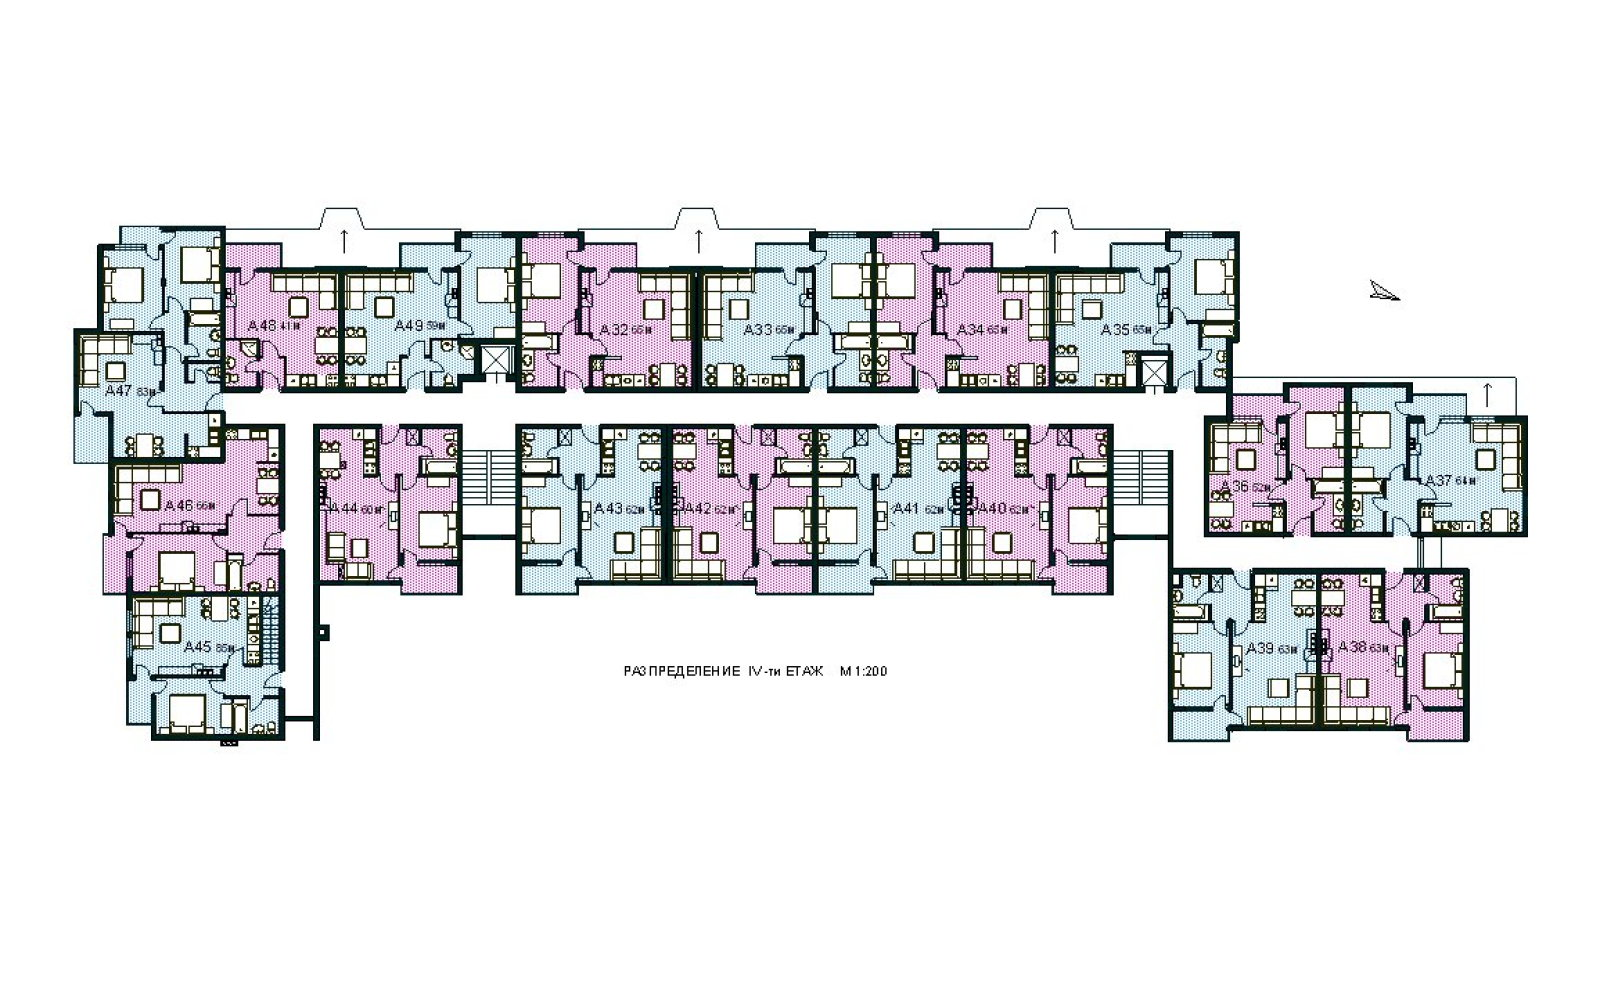 apartments accurate floor plans of 15 famous apartments. floor ...